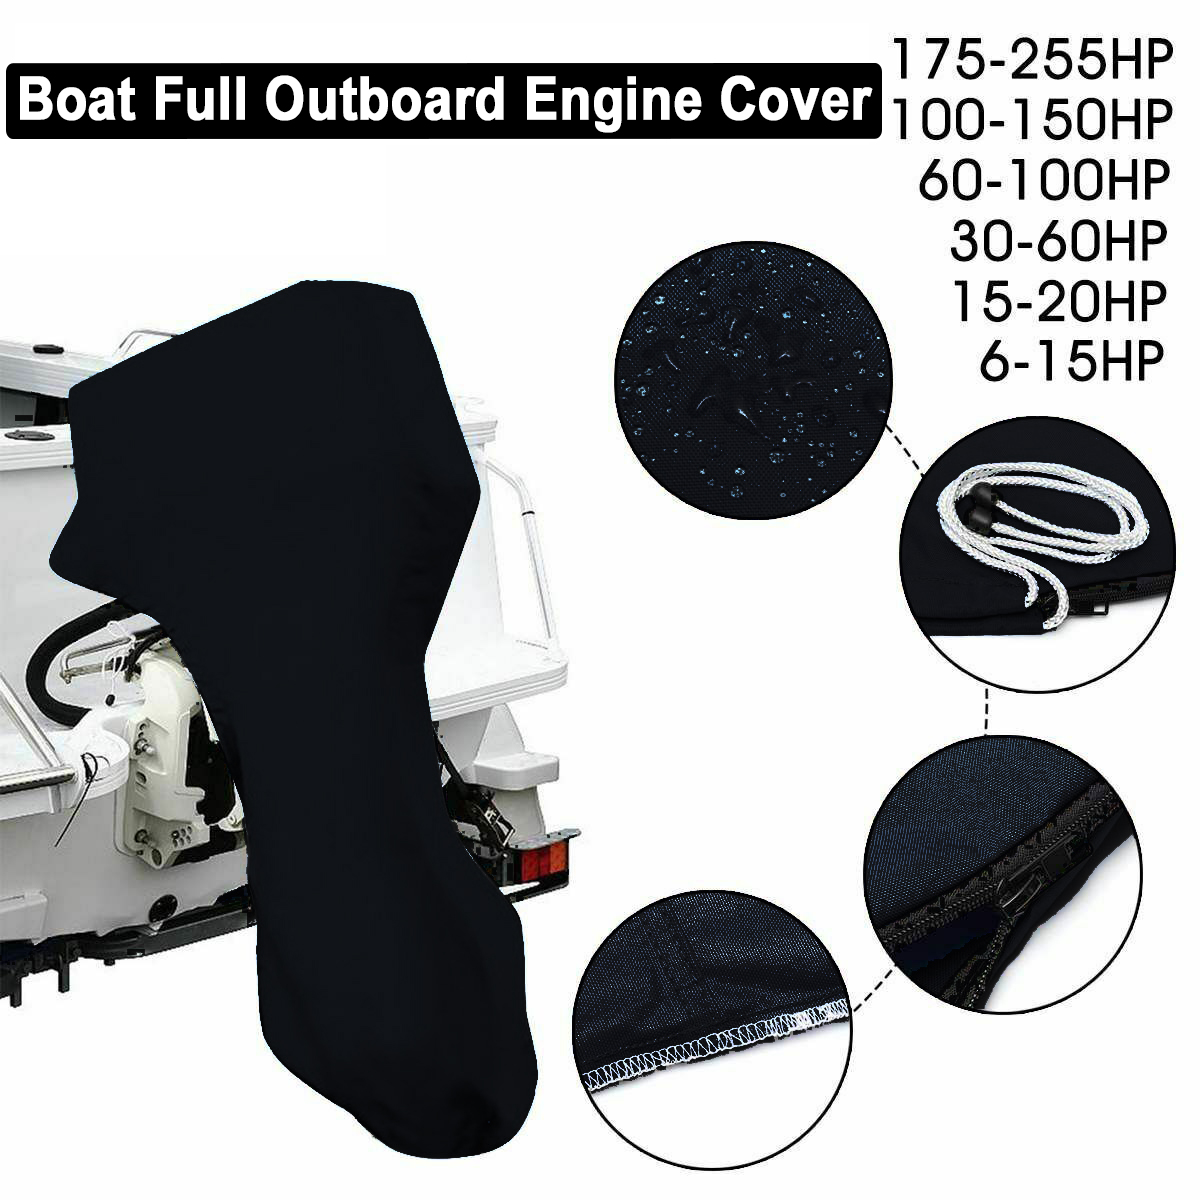 Outboard Engine Boat Full Motor Cover Engine Protection Waterproof for 6 - 225HP Outdoor Accessory Tools Black image